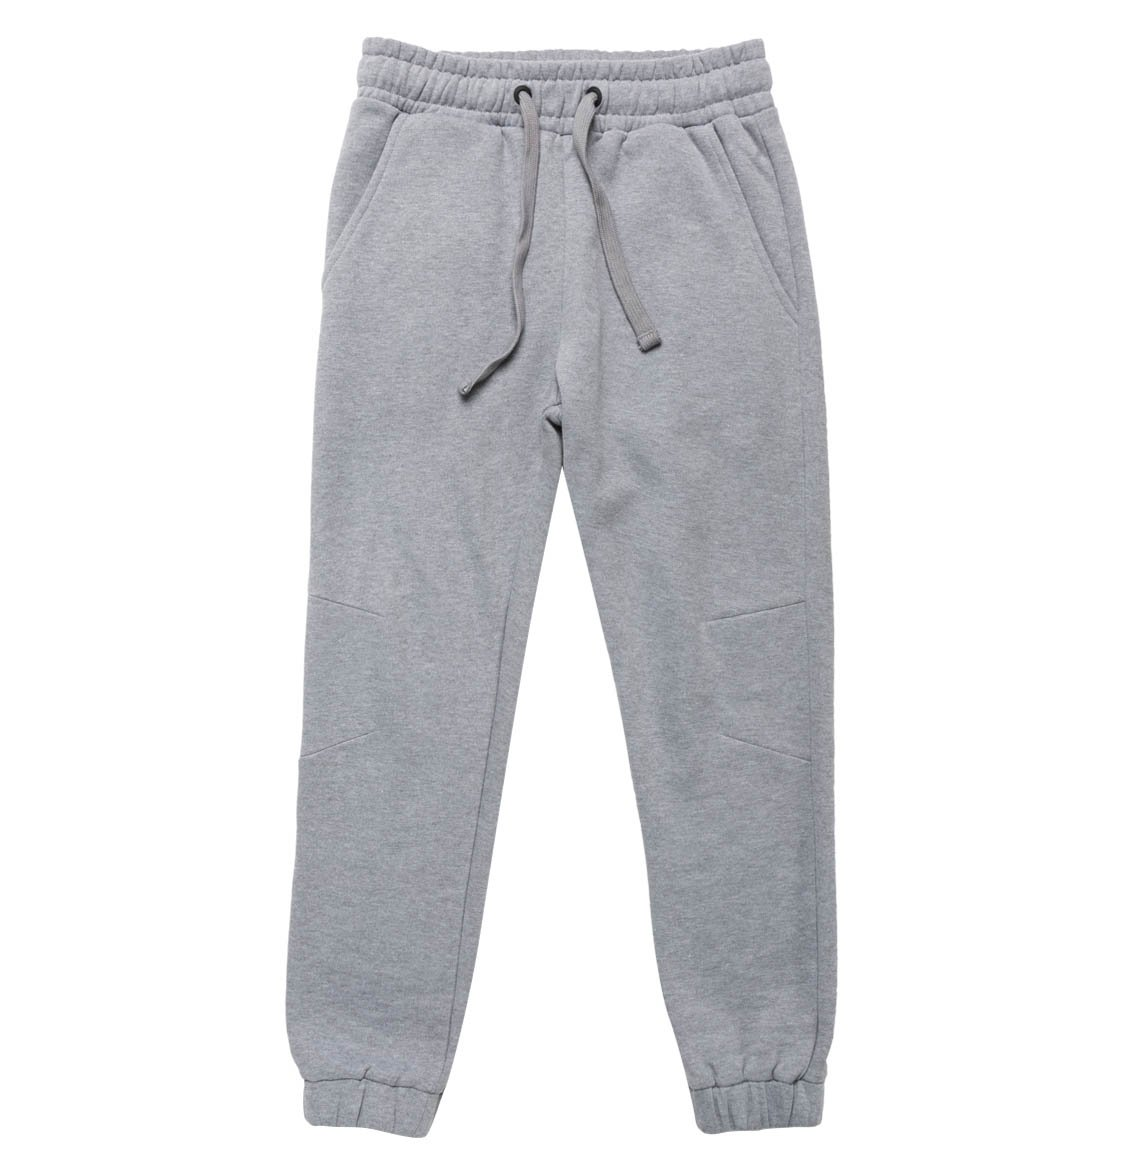 The Project Garments Regular Fit Cotton Sweatpants Melange Grey